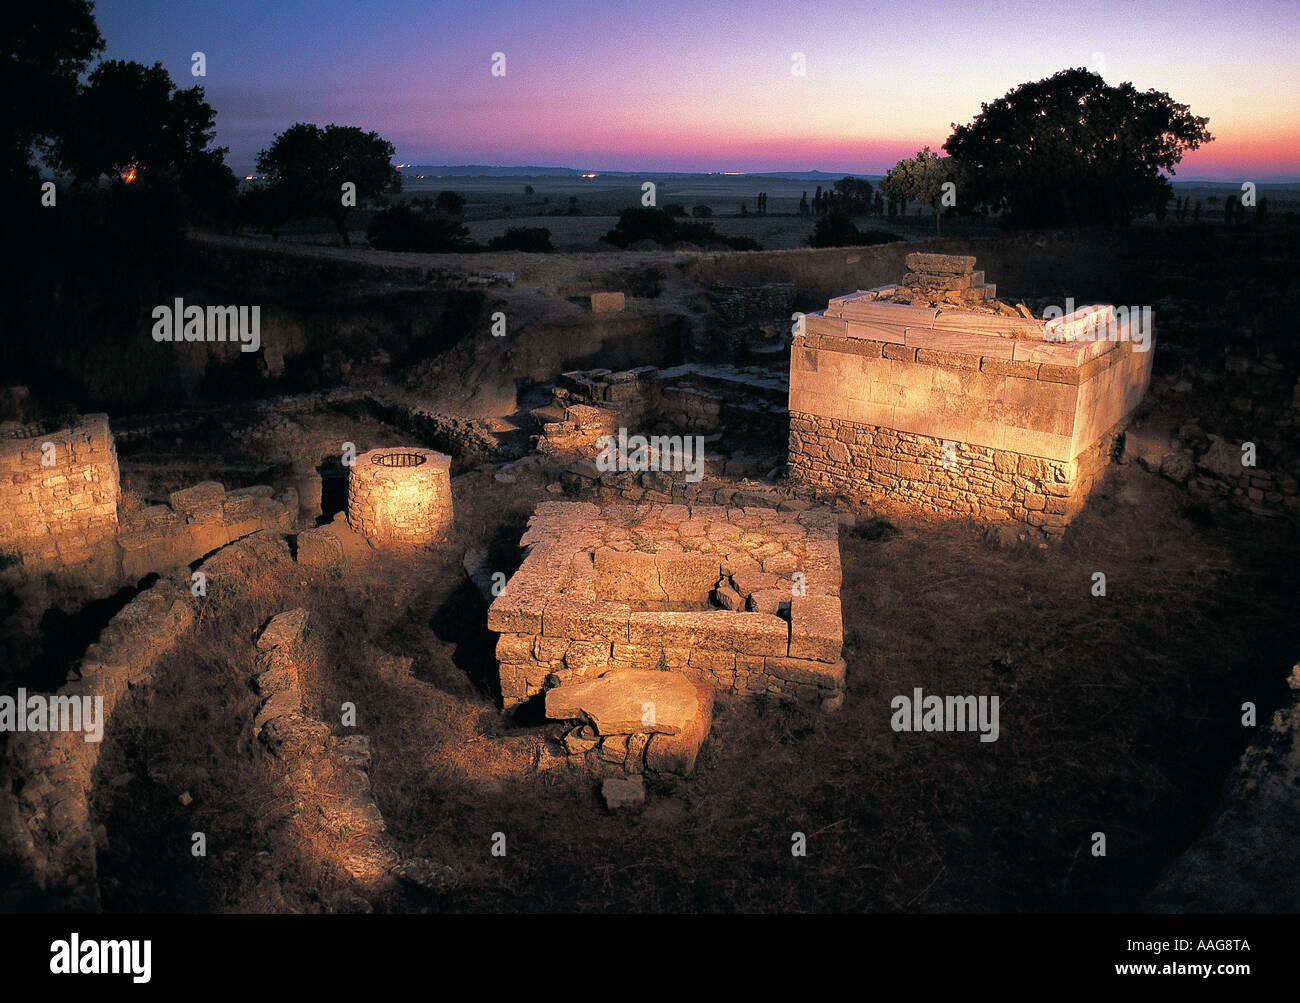 Altars in Troy ancient city, Canakkale Turkey. Stock Photo